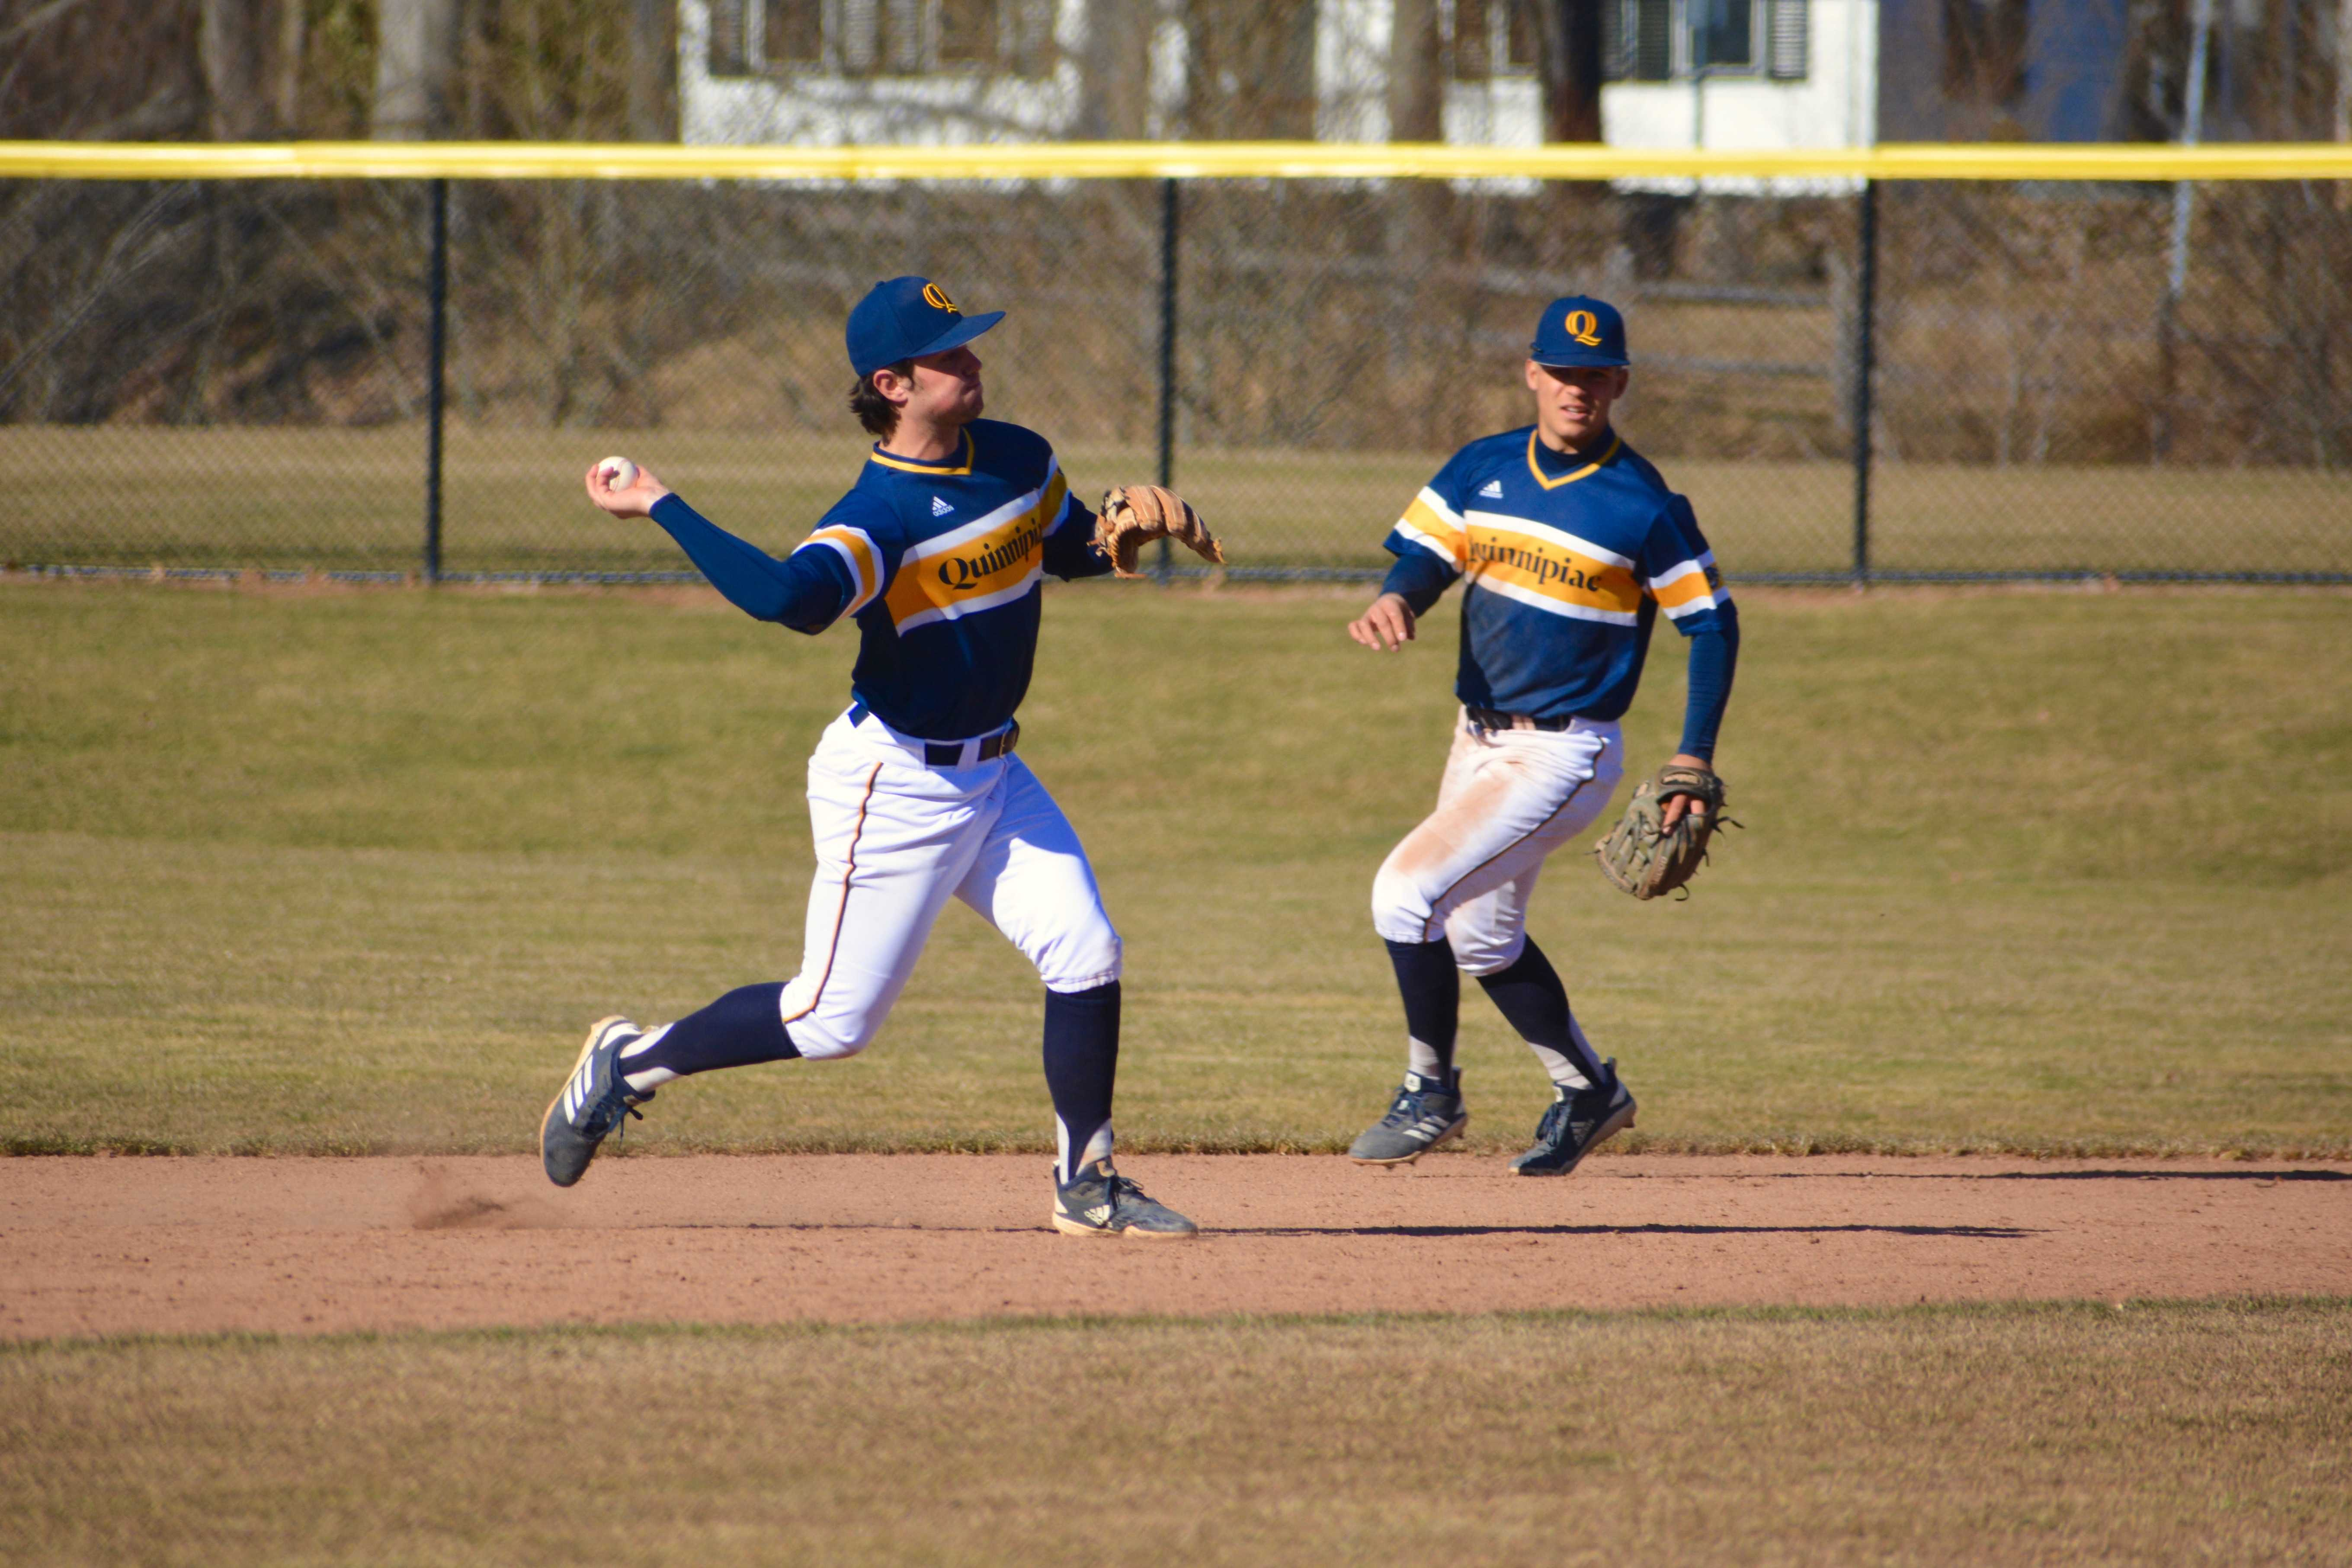 Quinnipiac baseball falls in late innings to URI